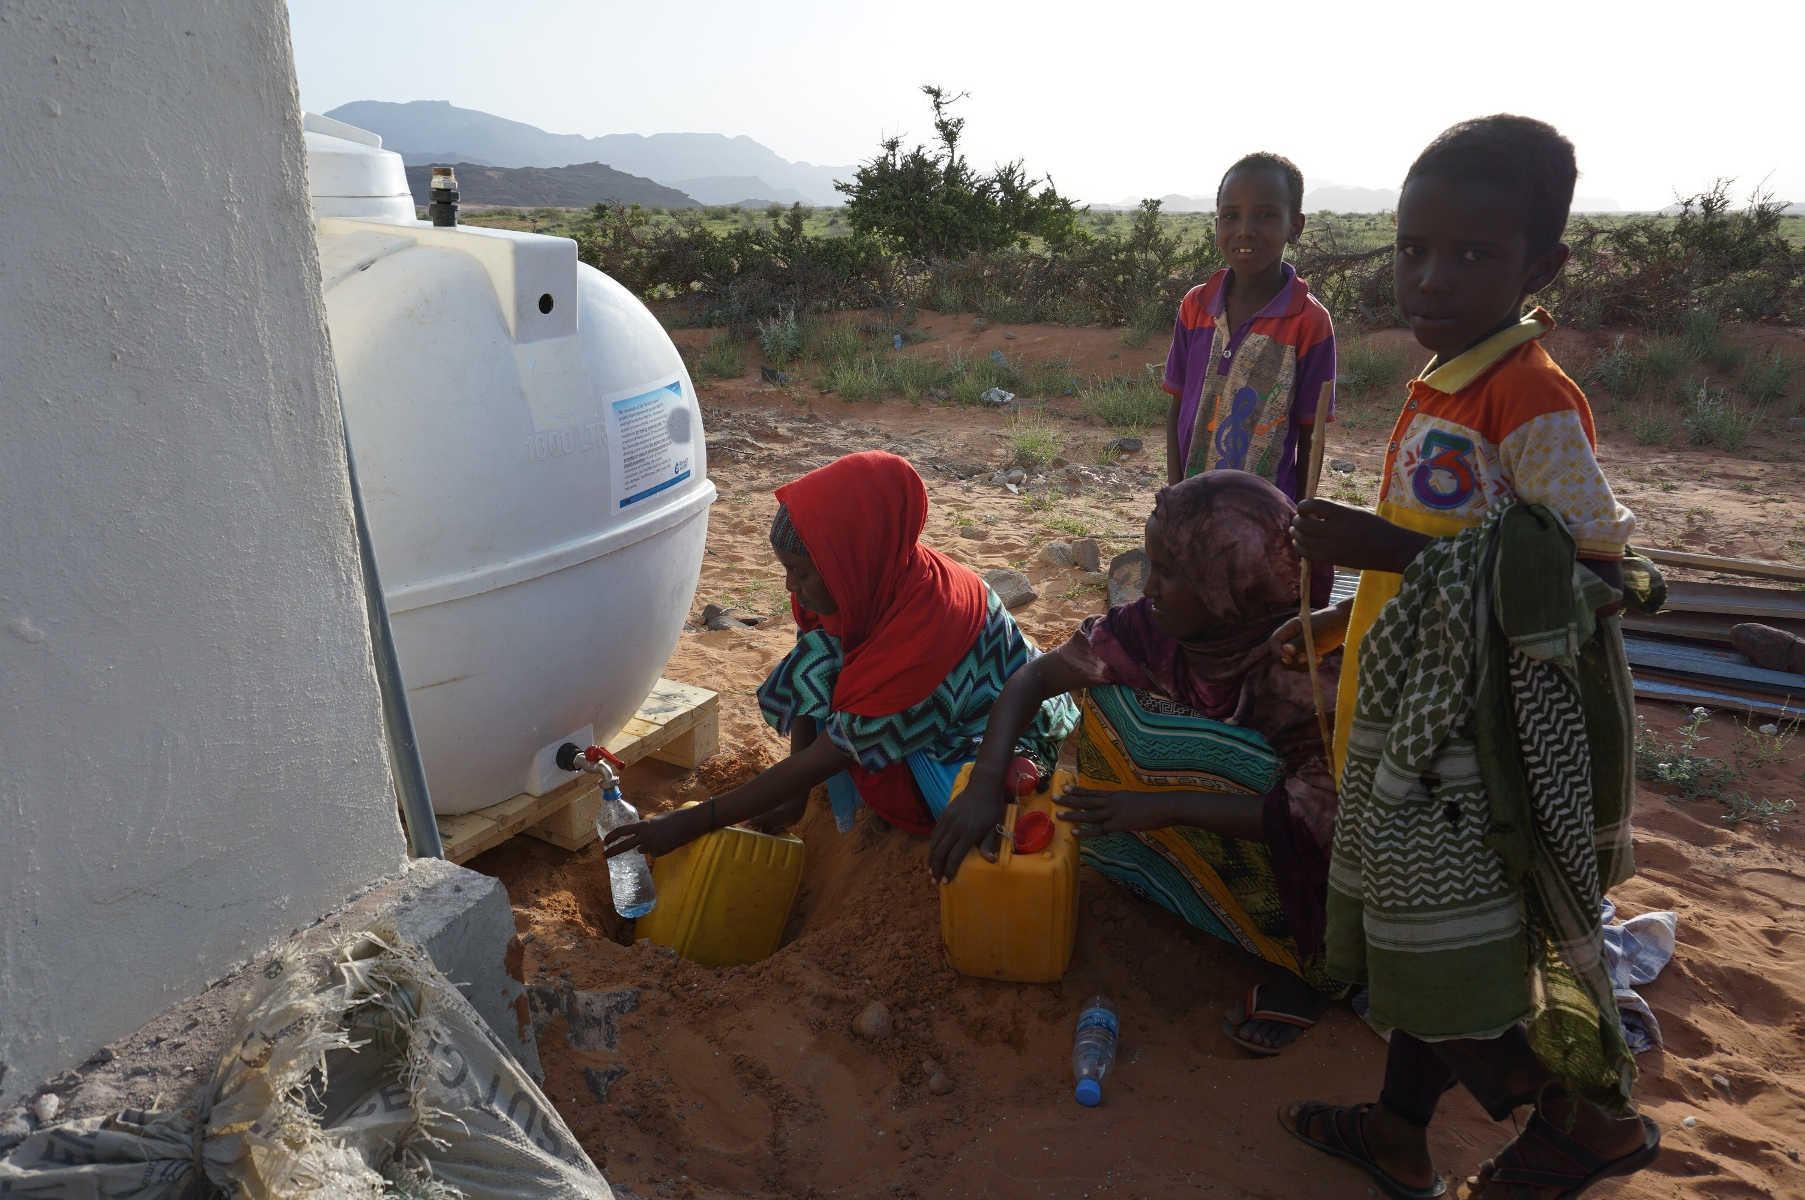 Locals take newly desalinated water from the REvivED water tank